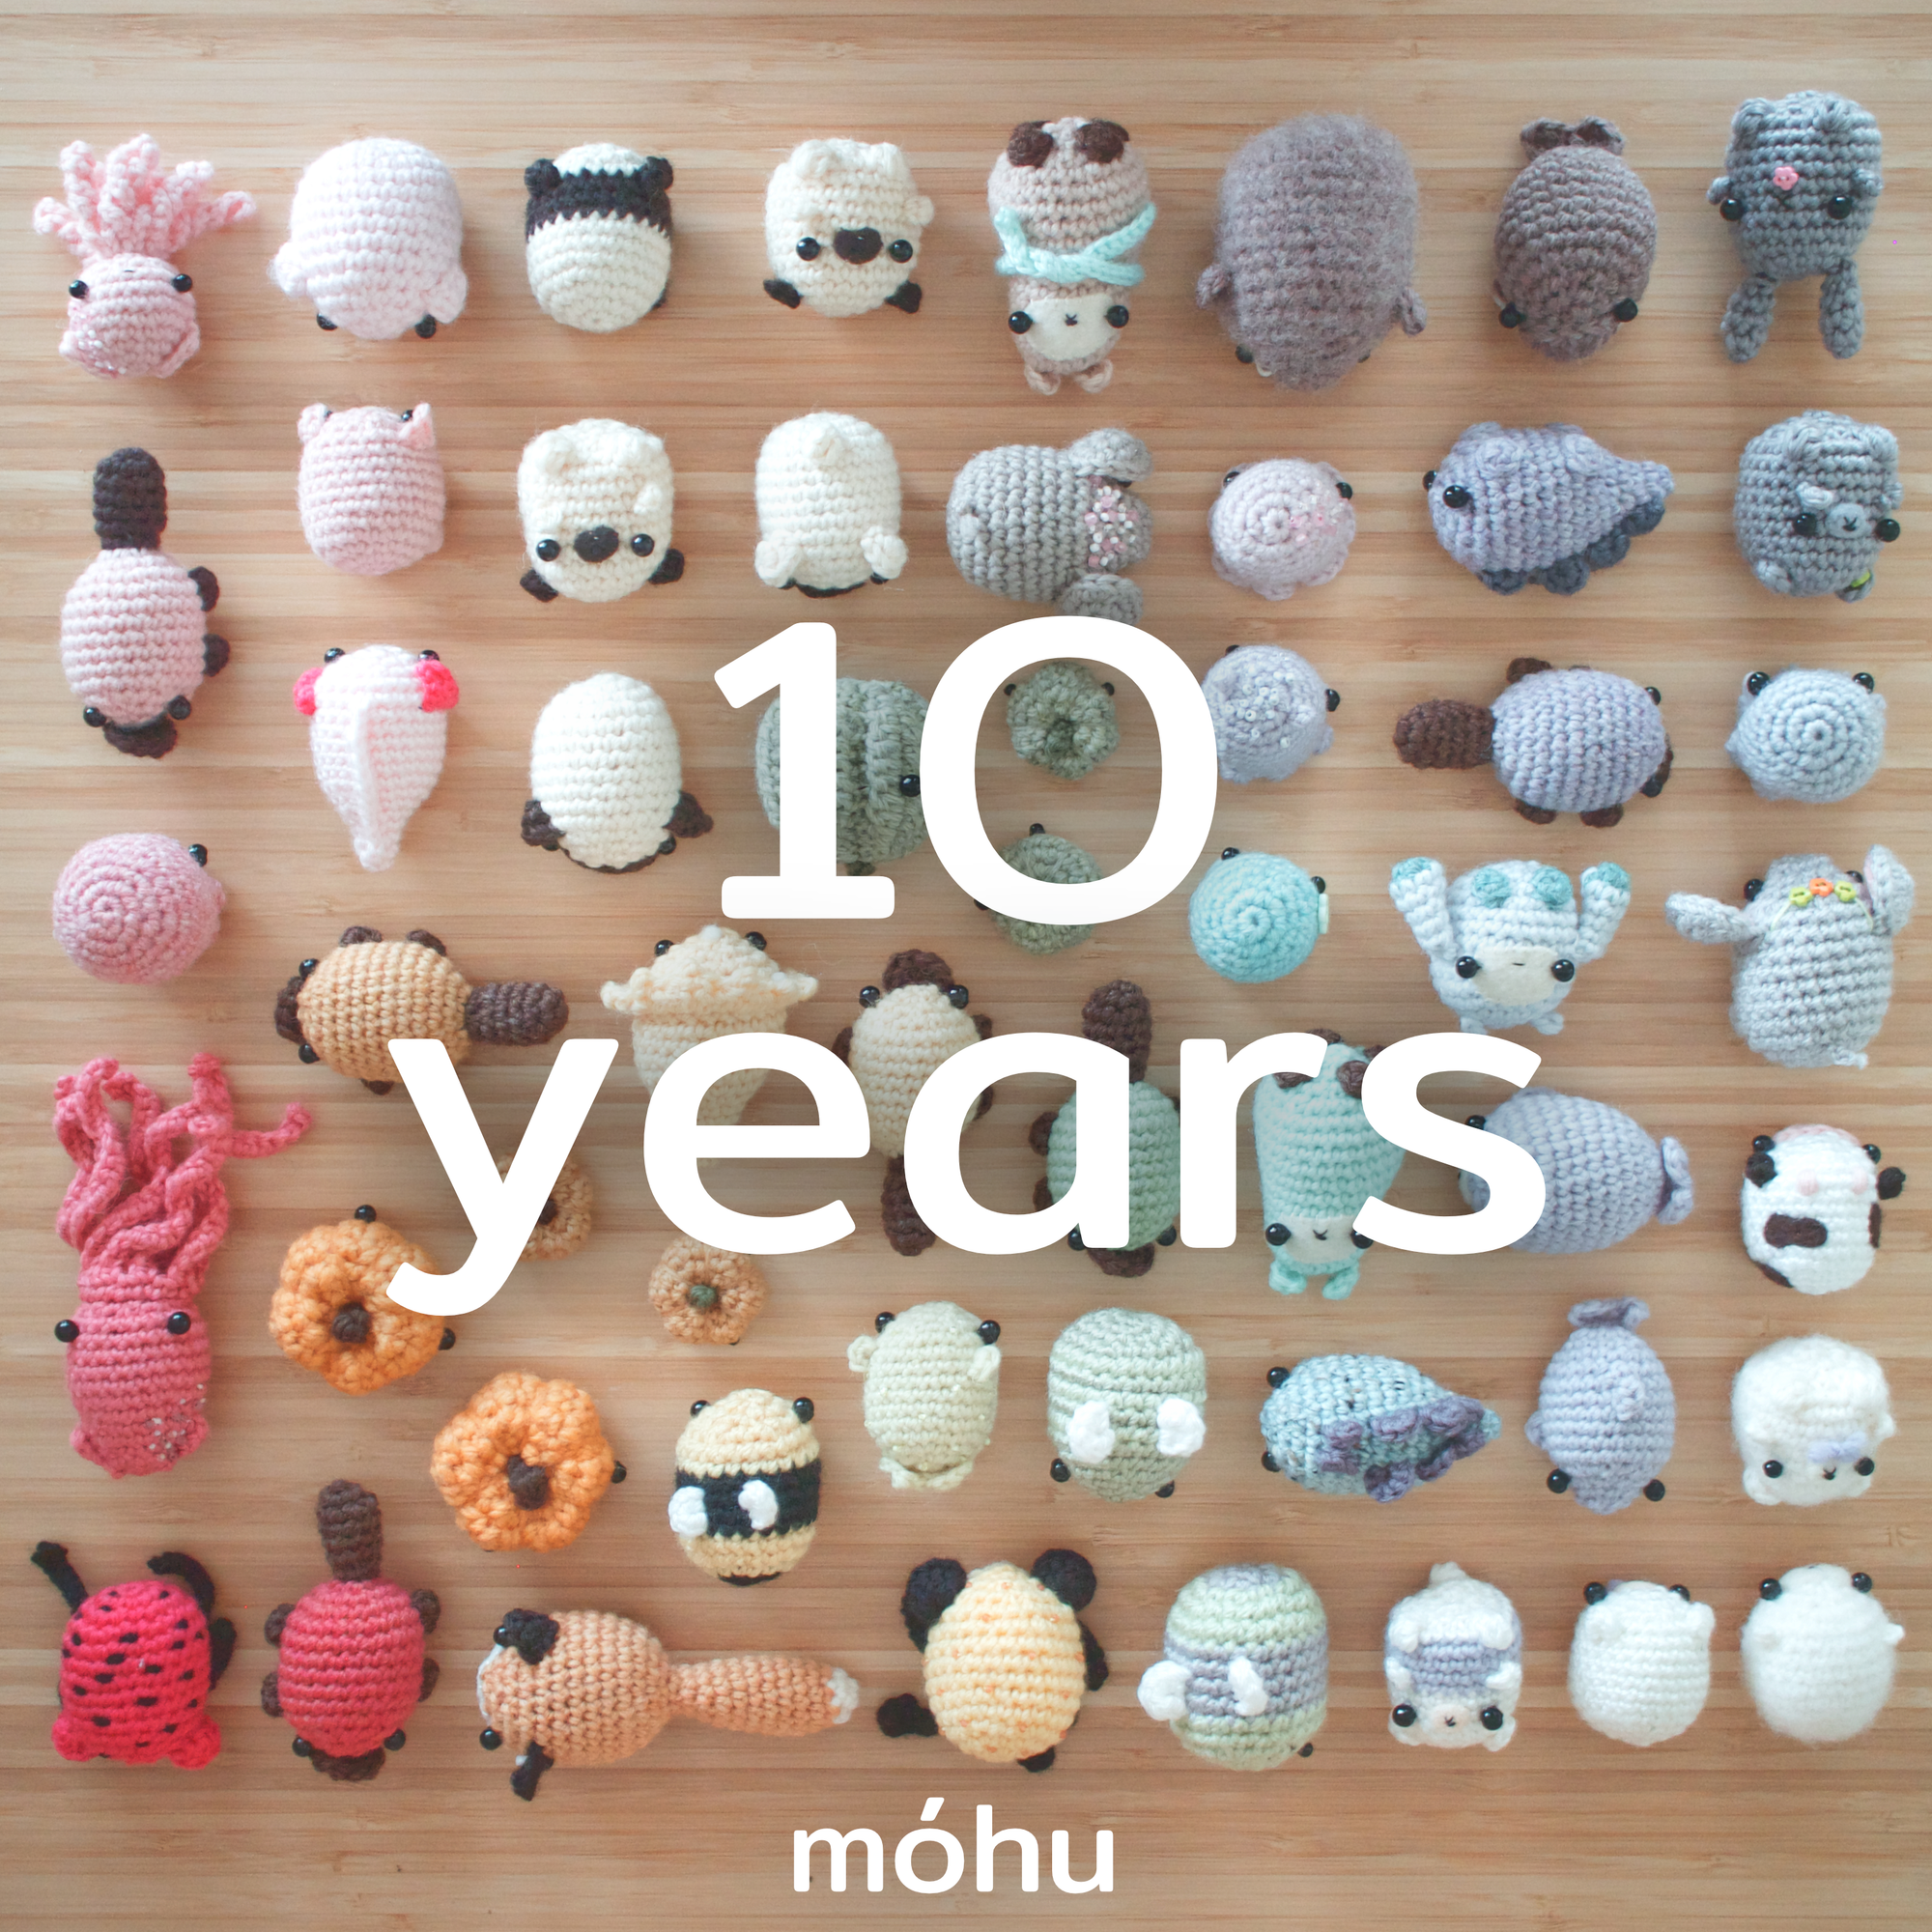 Mohu Store is 10 years old